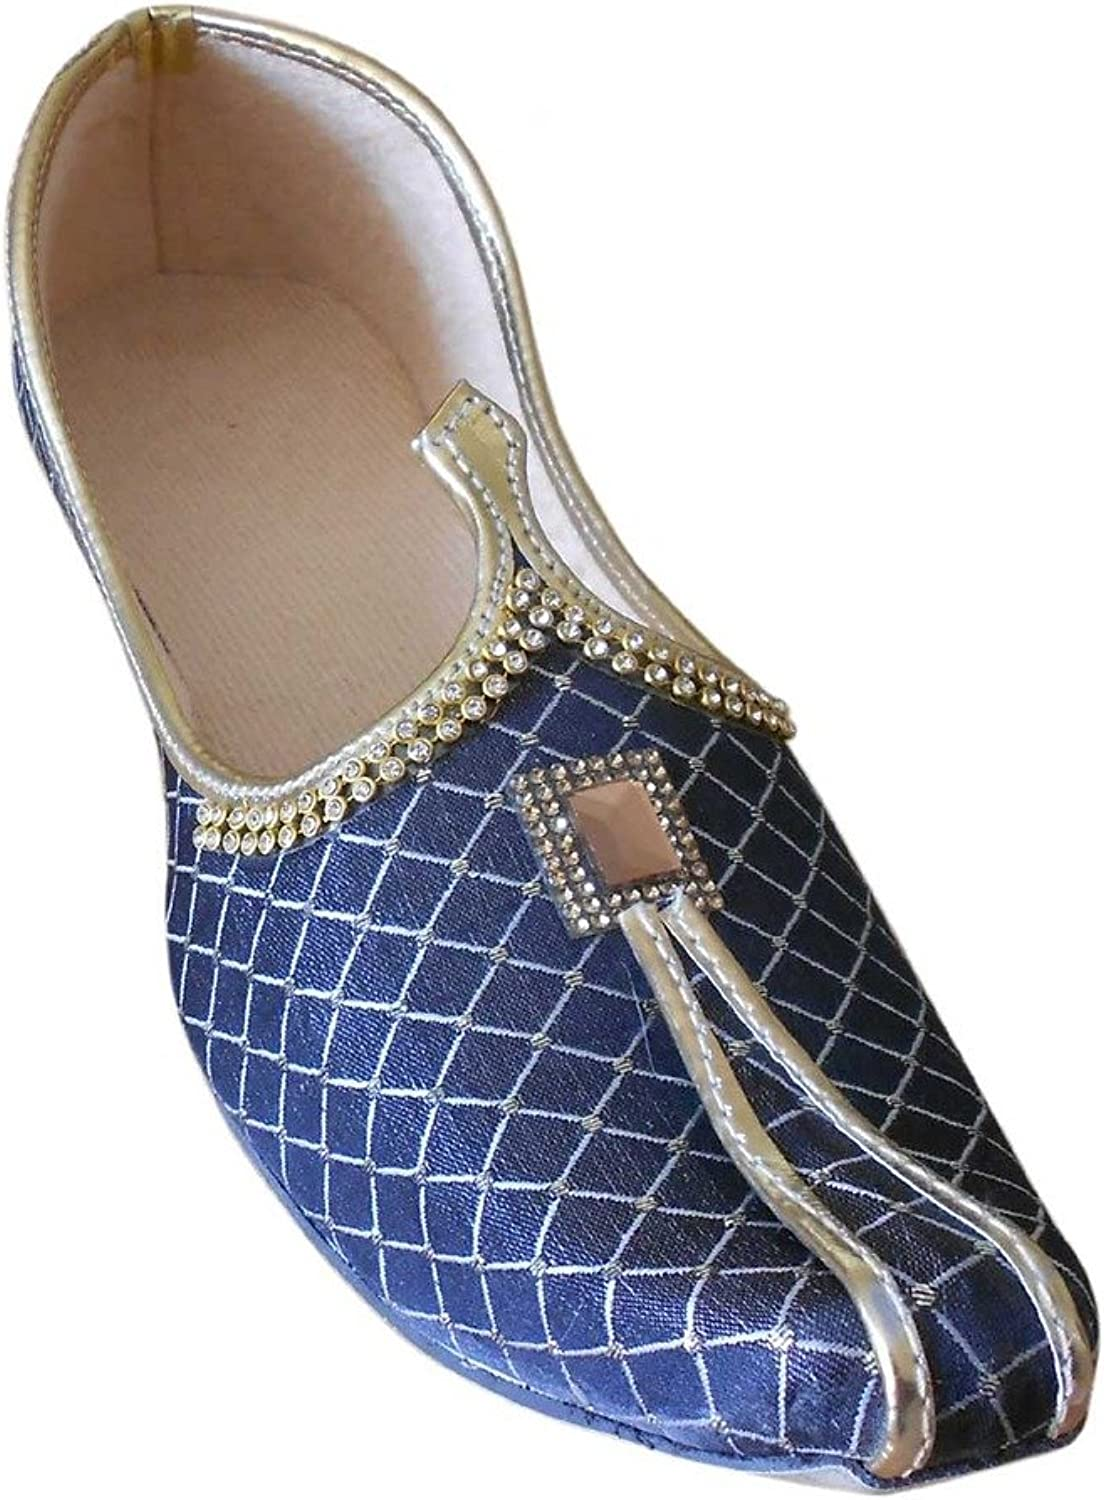 Kalra Creations Jutti Men's Traditional Indian Mojari Ethnic shoes